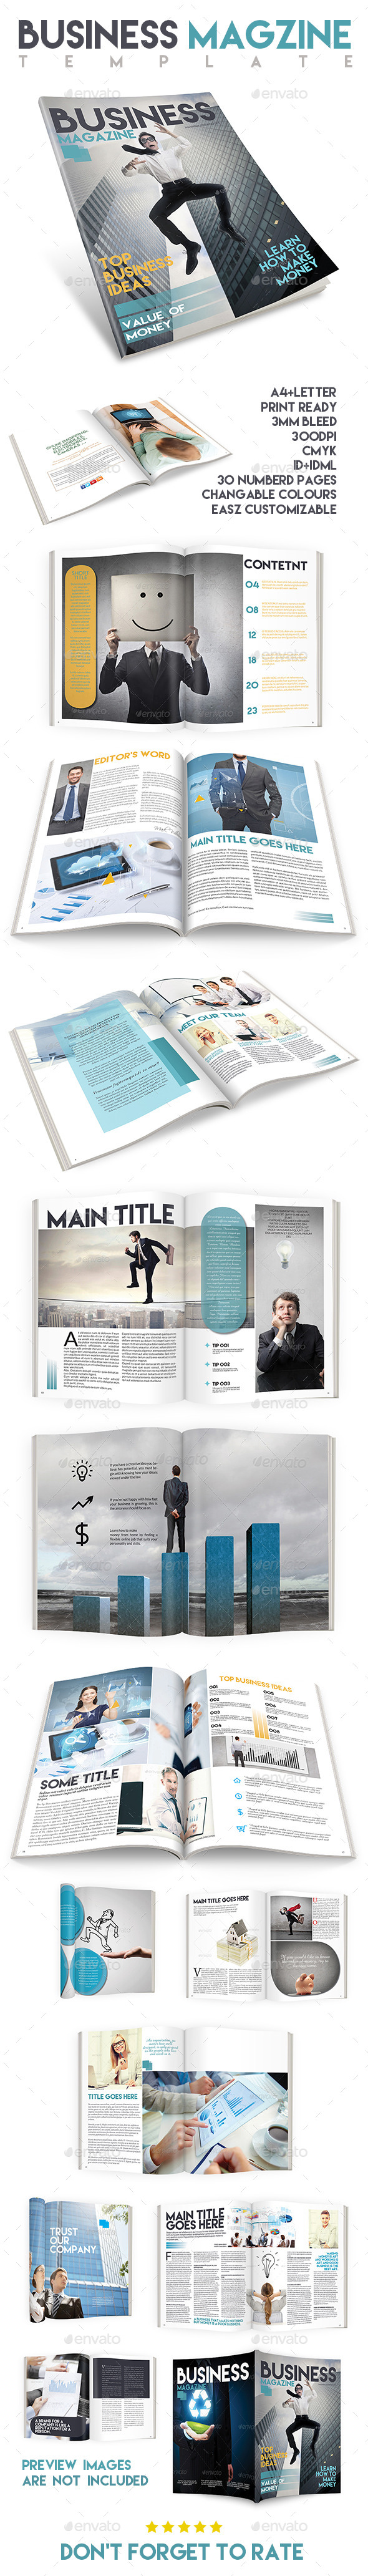 Business Magazine Template Issue Two - Magazines Print Templates